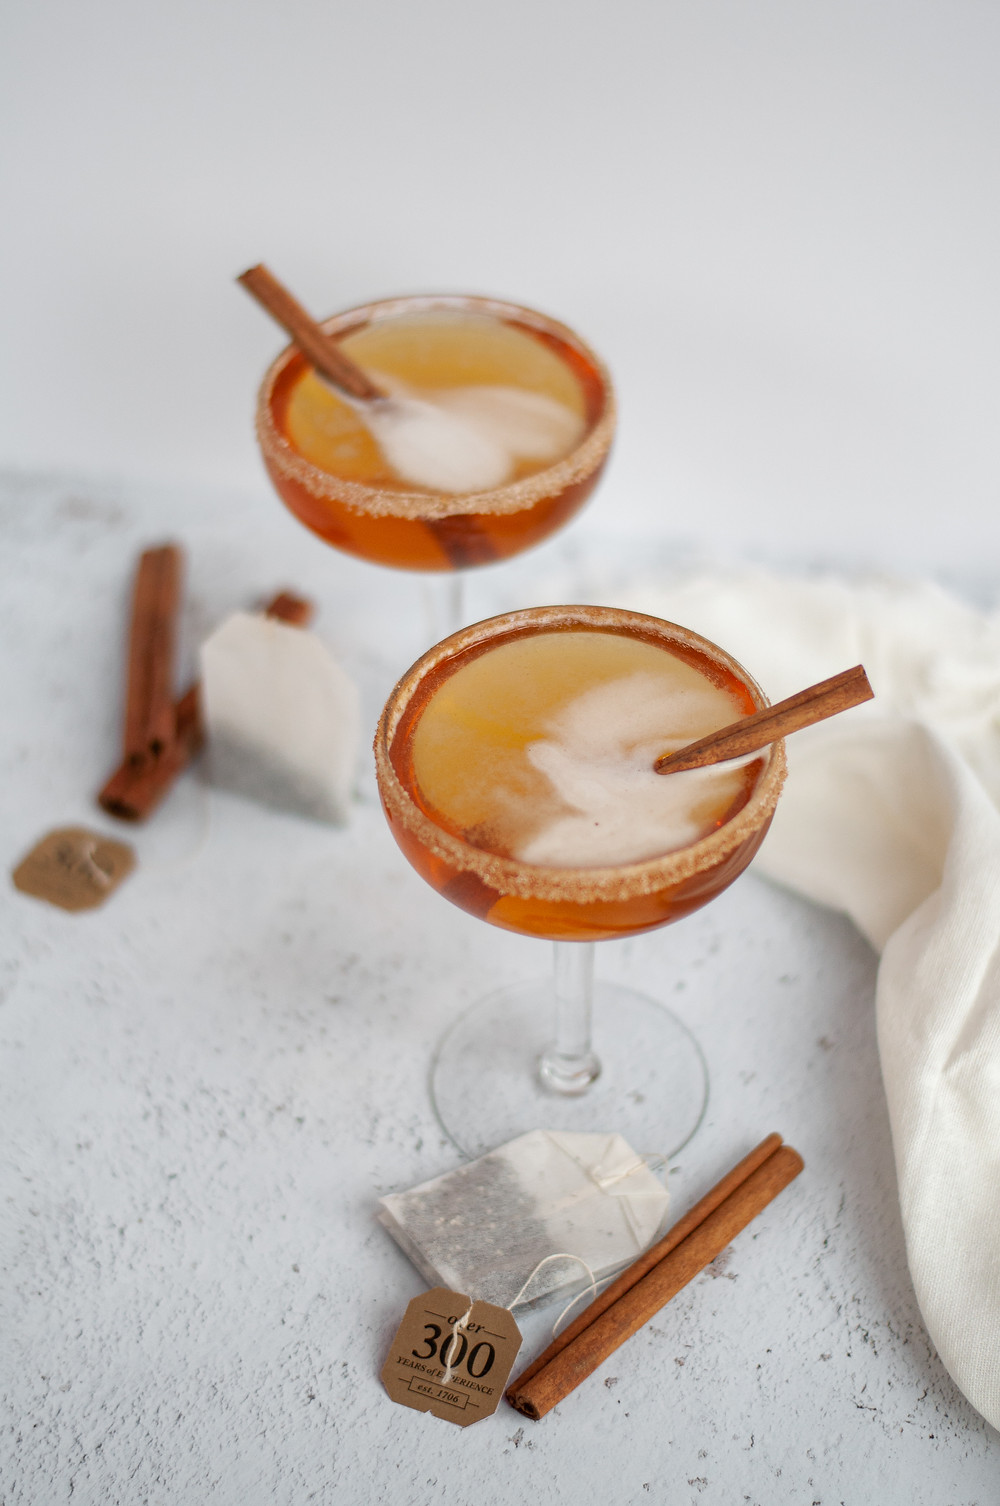 Another view of two coupe glasses filled with this bourbon cocktail recipe, garnished with cinnamon sticks and a cinnamon-sugar rim